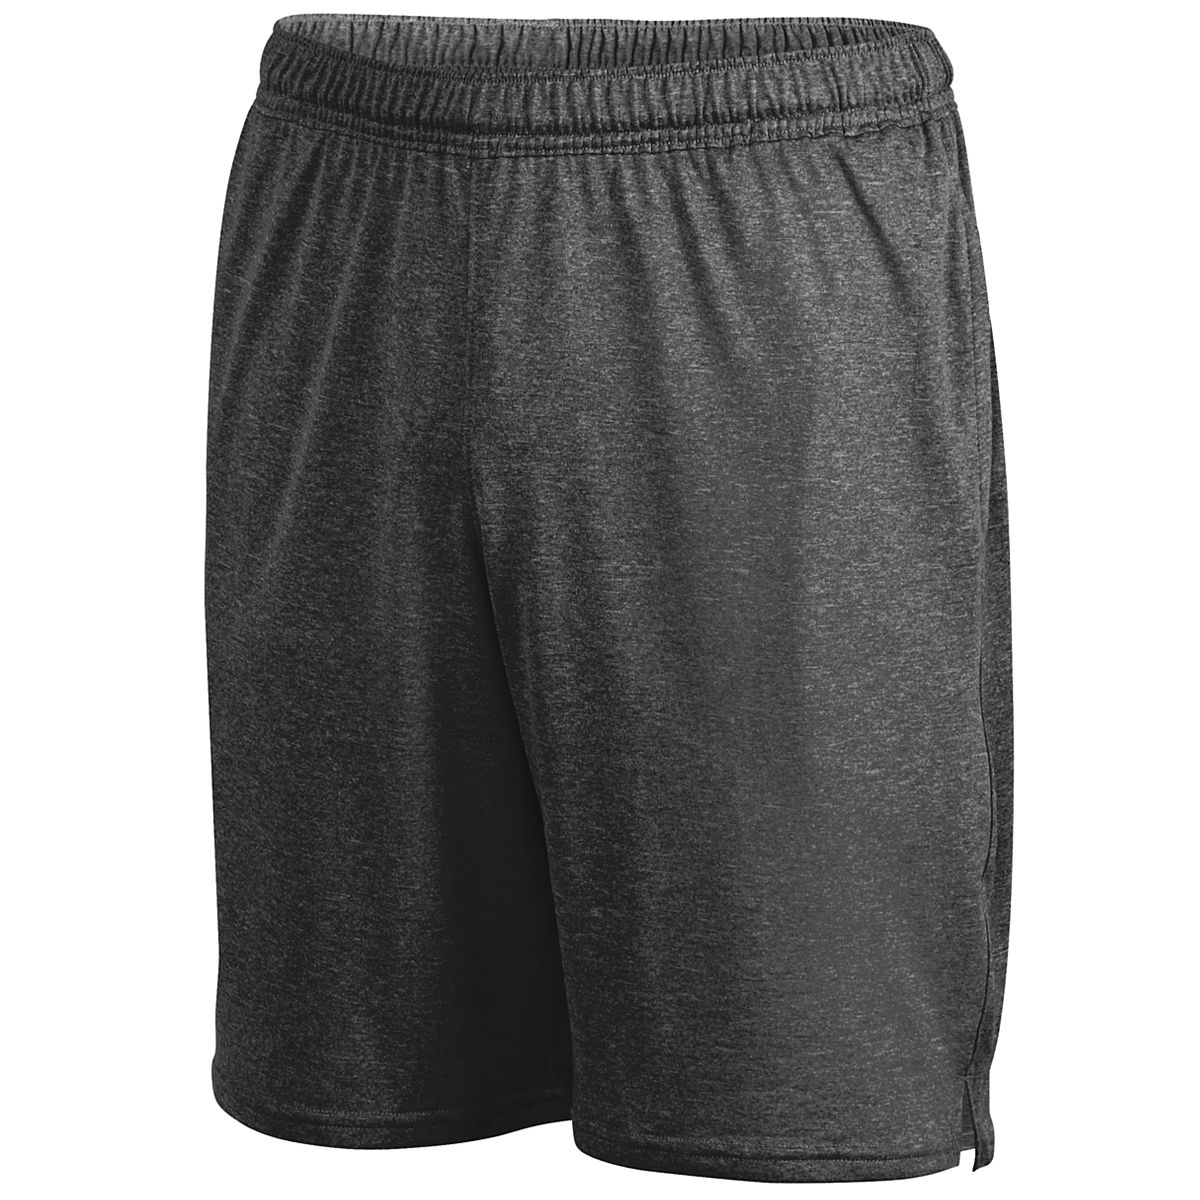 Augusta Youth Kinergy Training Short Blkhr M - image 1 de 1